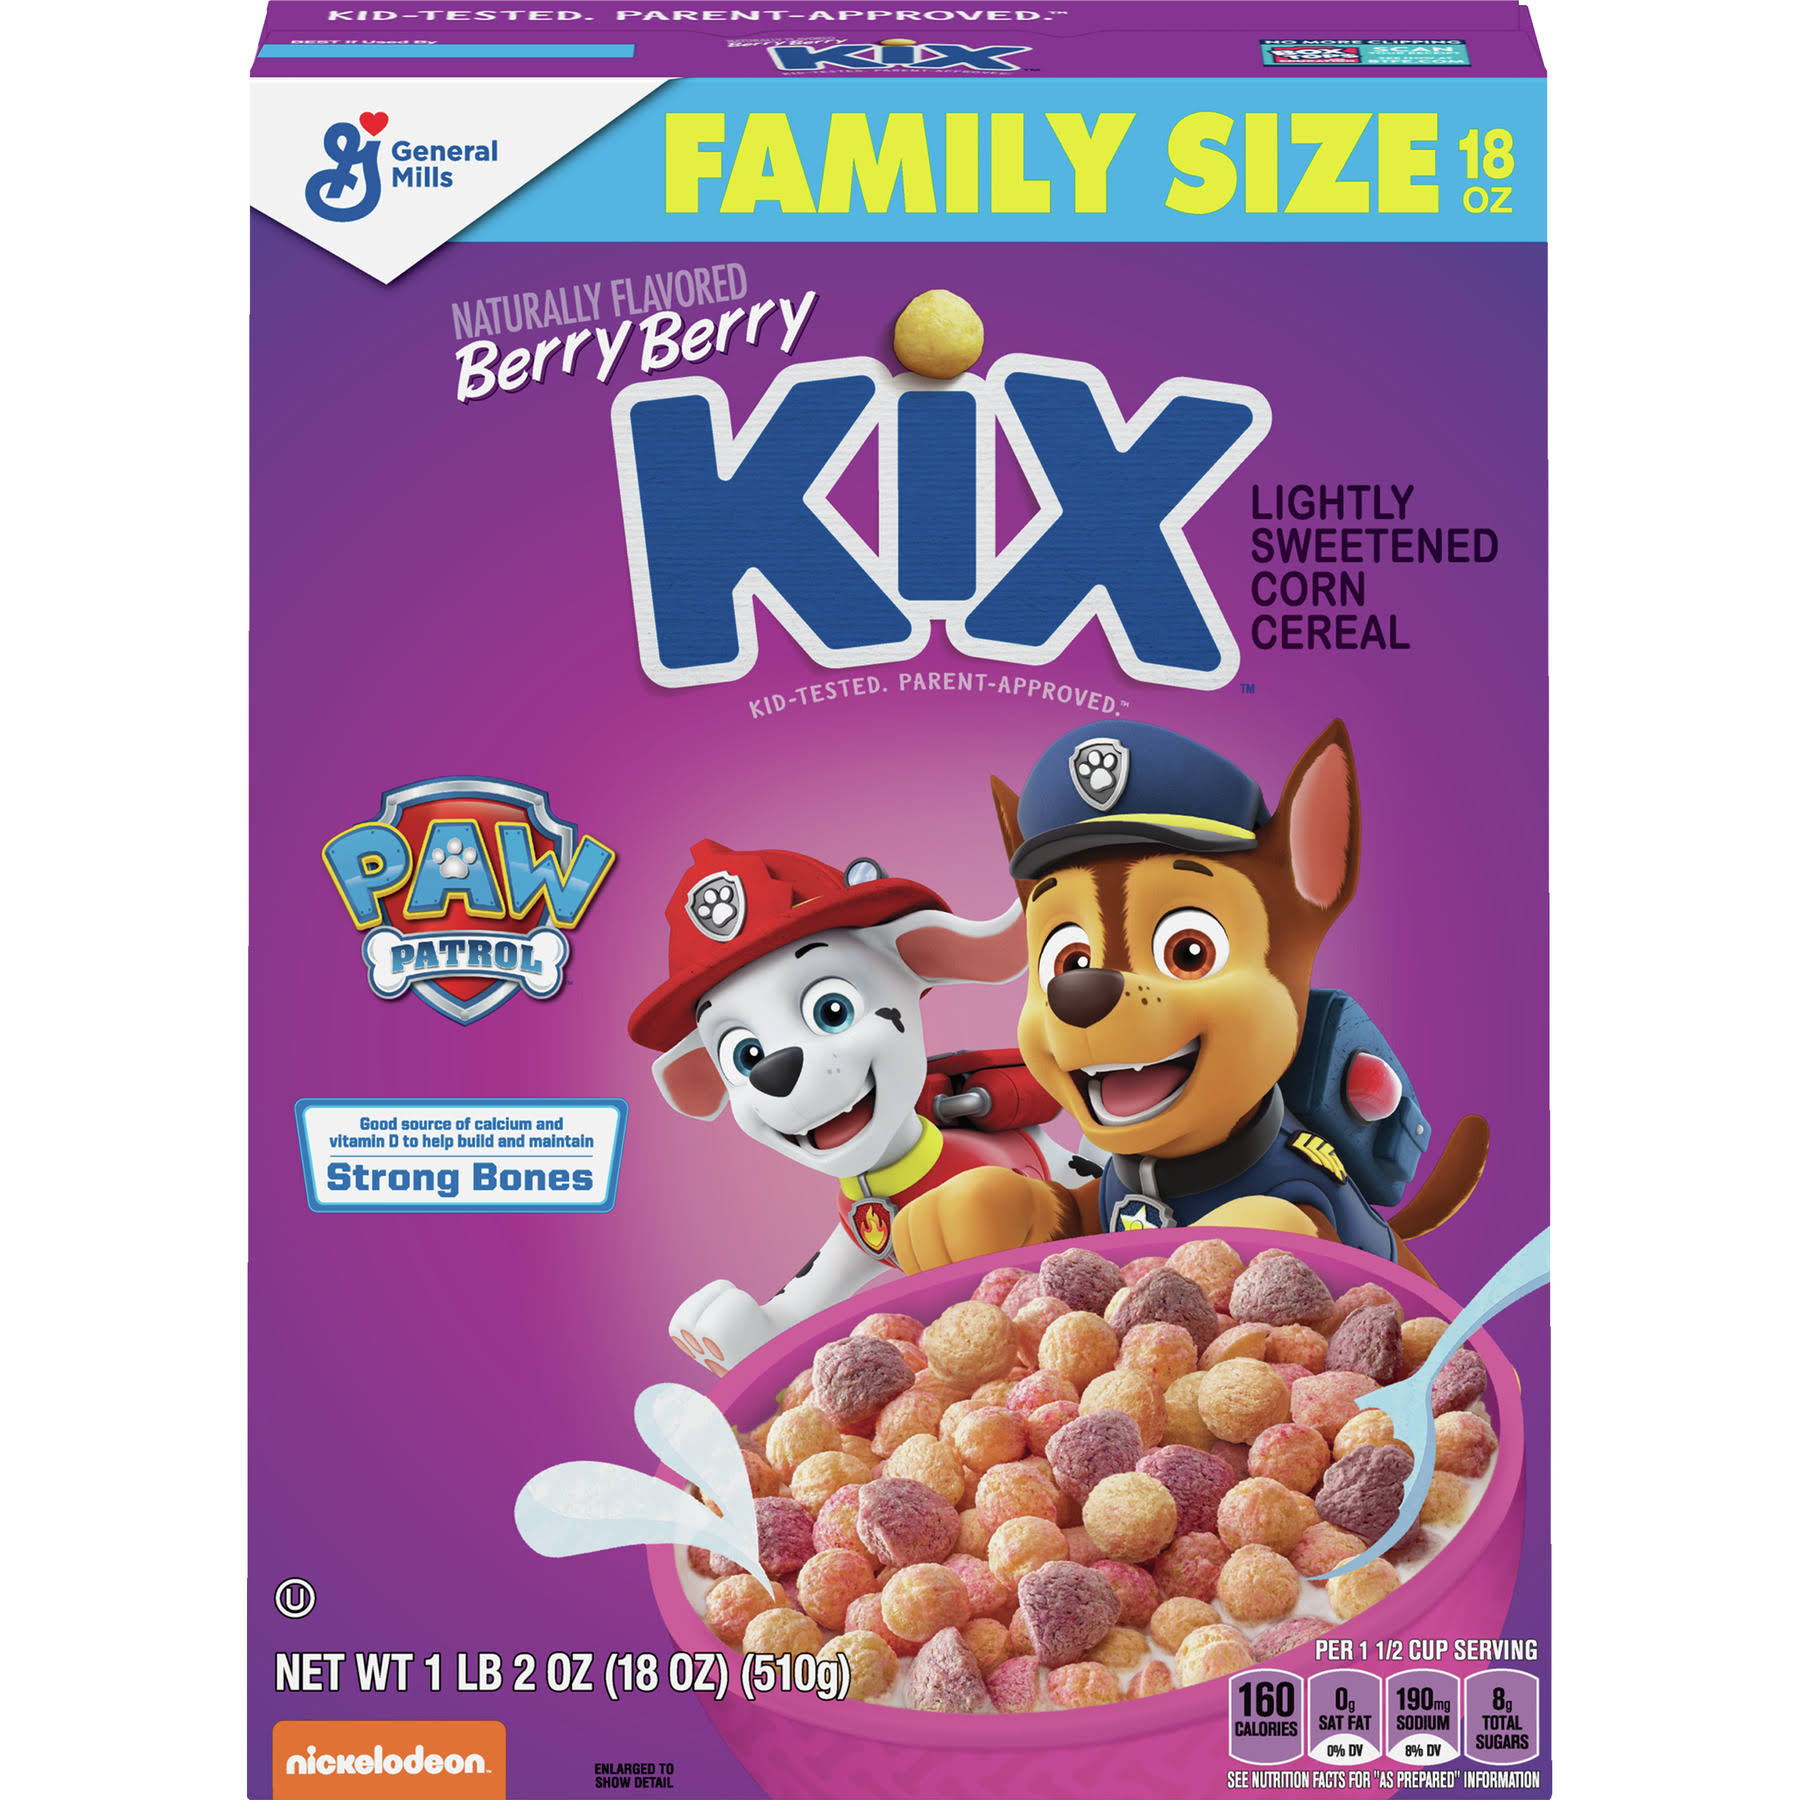 General Mills Kix Berry Berry Cereal - Family Size, 18oz